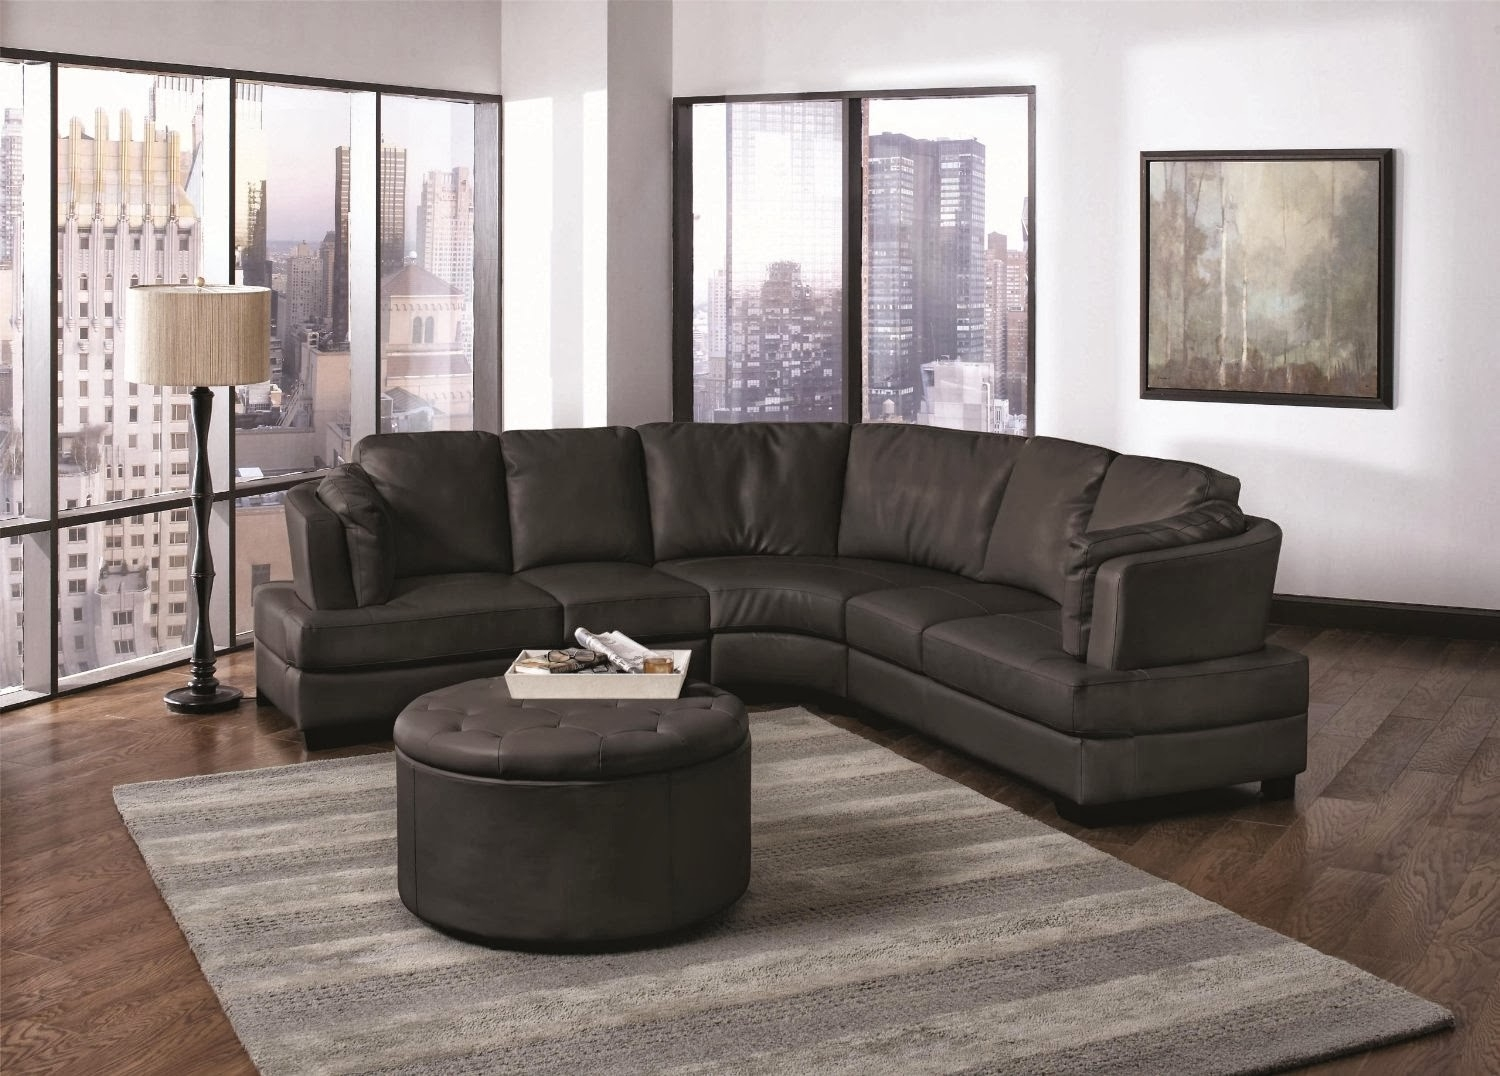 Curved Sectional Sofa With Recliner Cleanupflorida Intended For Curved Sectional Sofa With Recliner (#3 of 12)